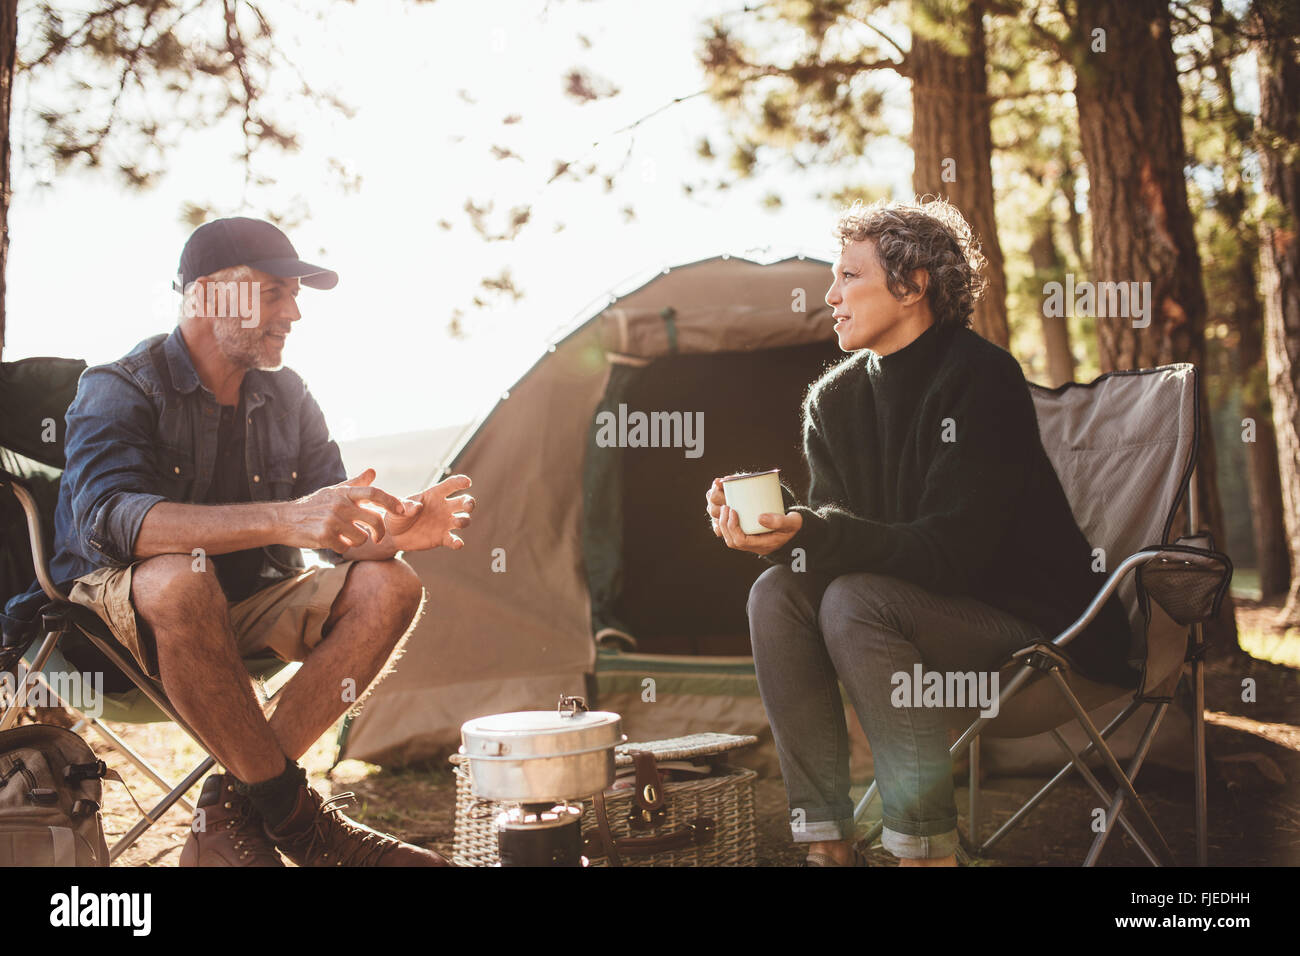 Mature man and woman sitting and talking at a campsite. Senior couple sitting in chairs outside the tent on a summer - Stock Image